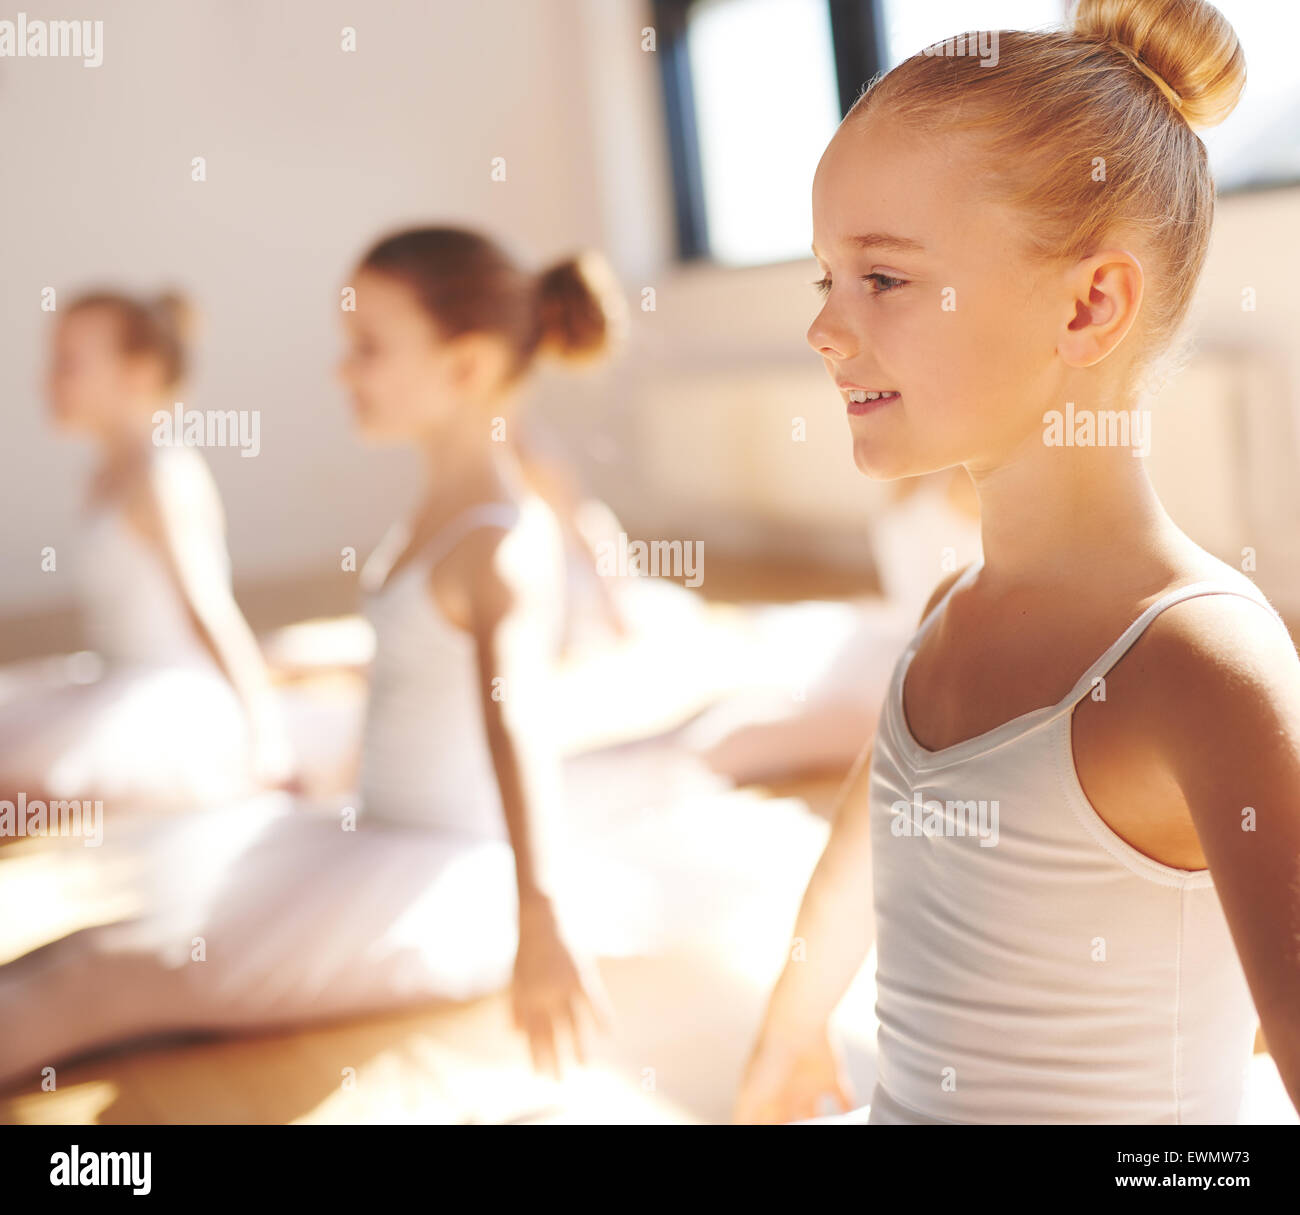 Close up side view of the face of a cute pretty little blond ballerina smiling in class as she practices her poses - Stock Image